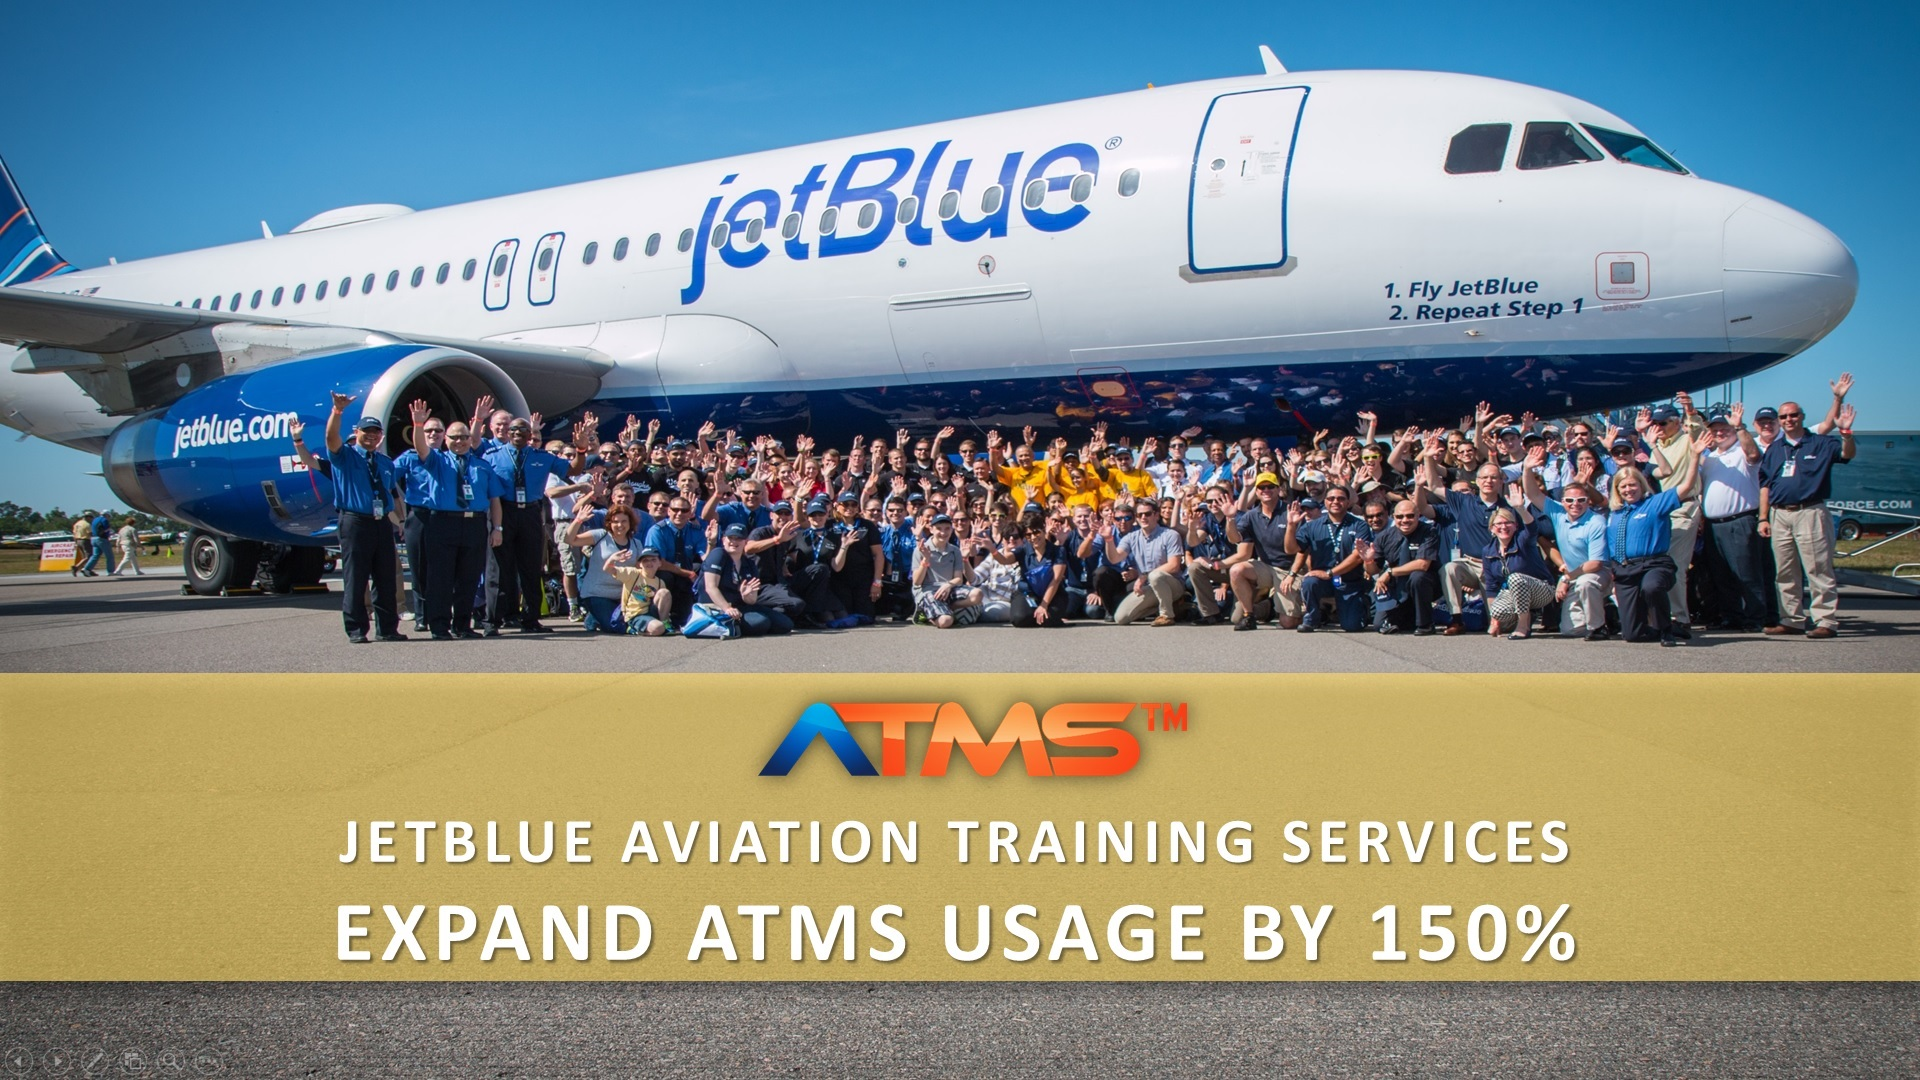 Jetblue airways expands ATMS